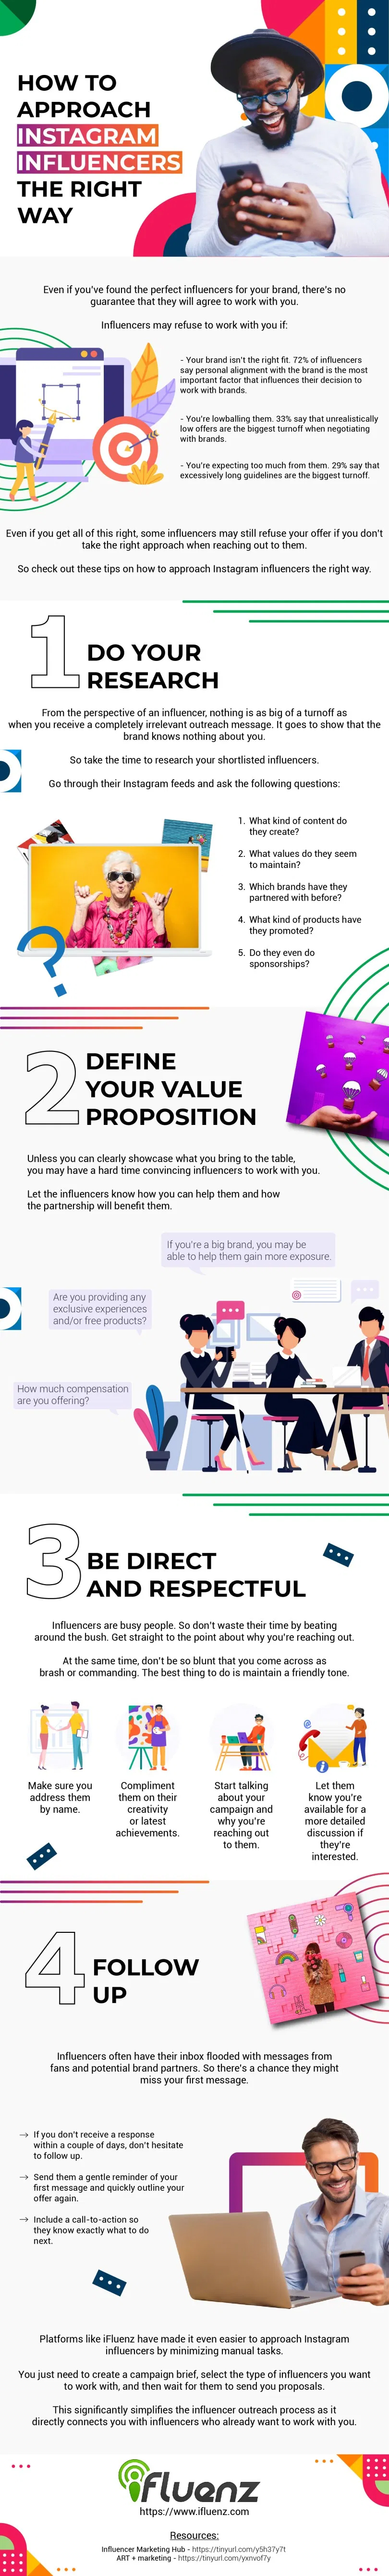 Infographic outlines how to approach Instagram influencers